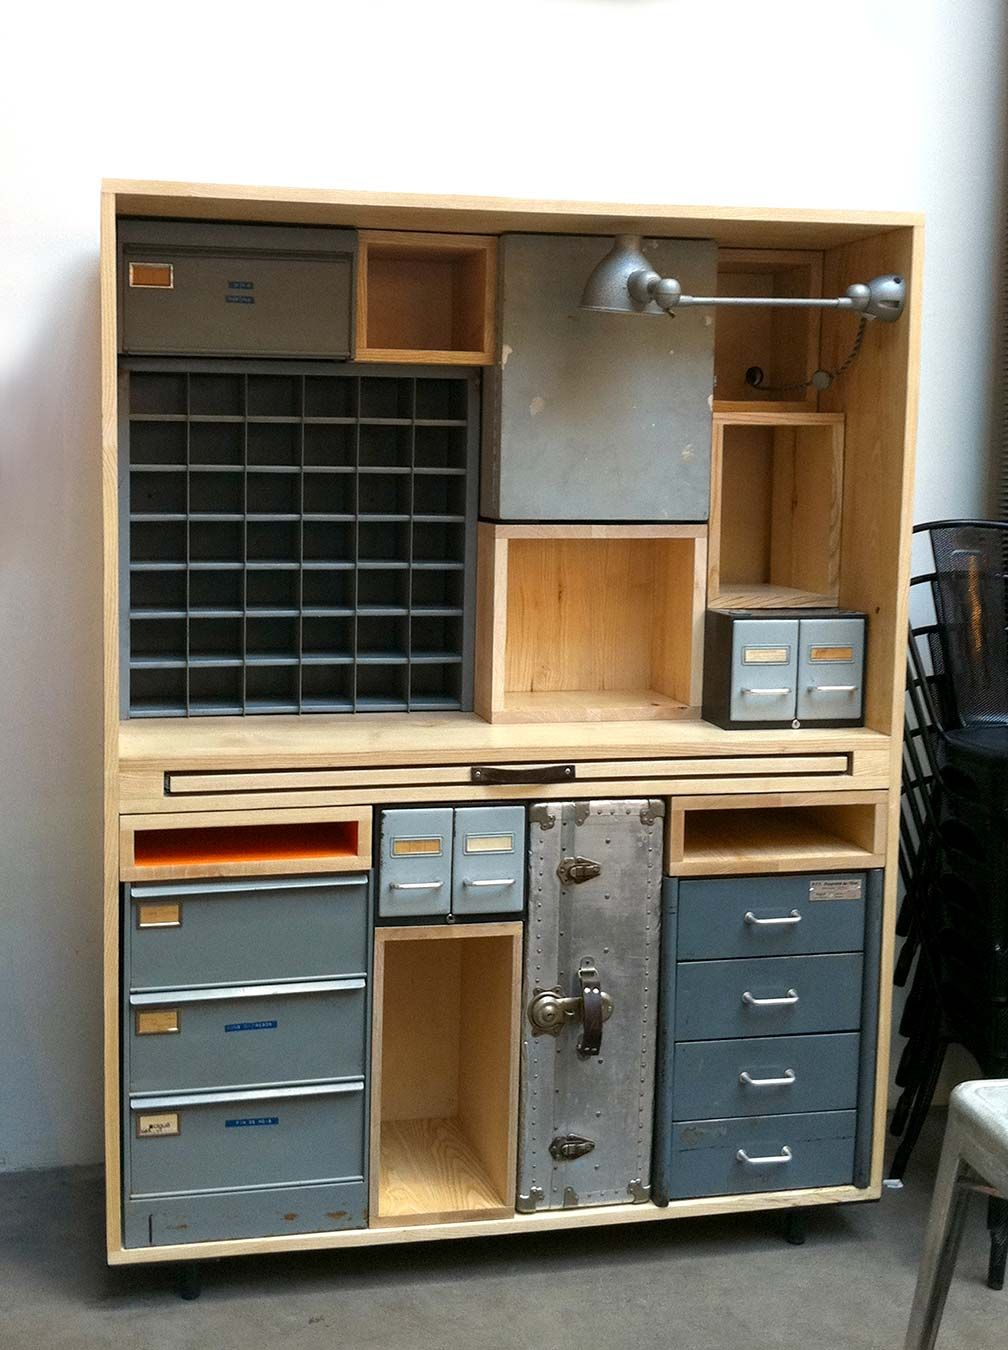 Astounding Rolling Workbench Home Office Storage Home Garage Download Free Architecture Designs Sospemadebymaigaardcom